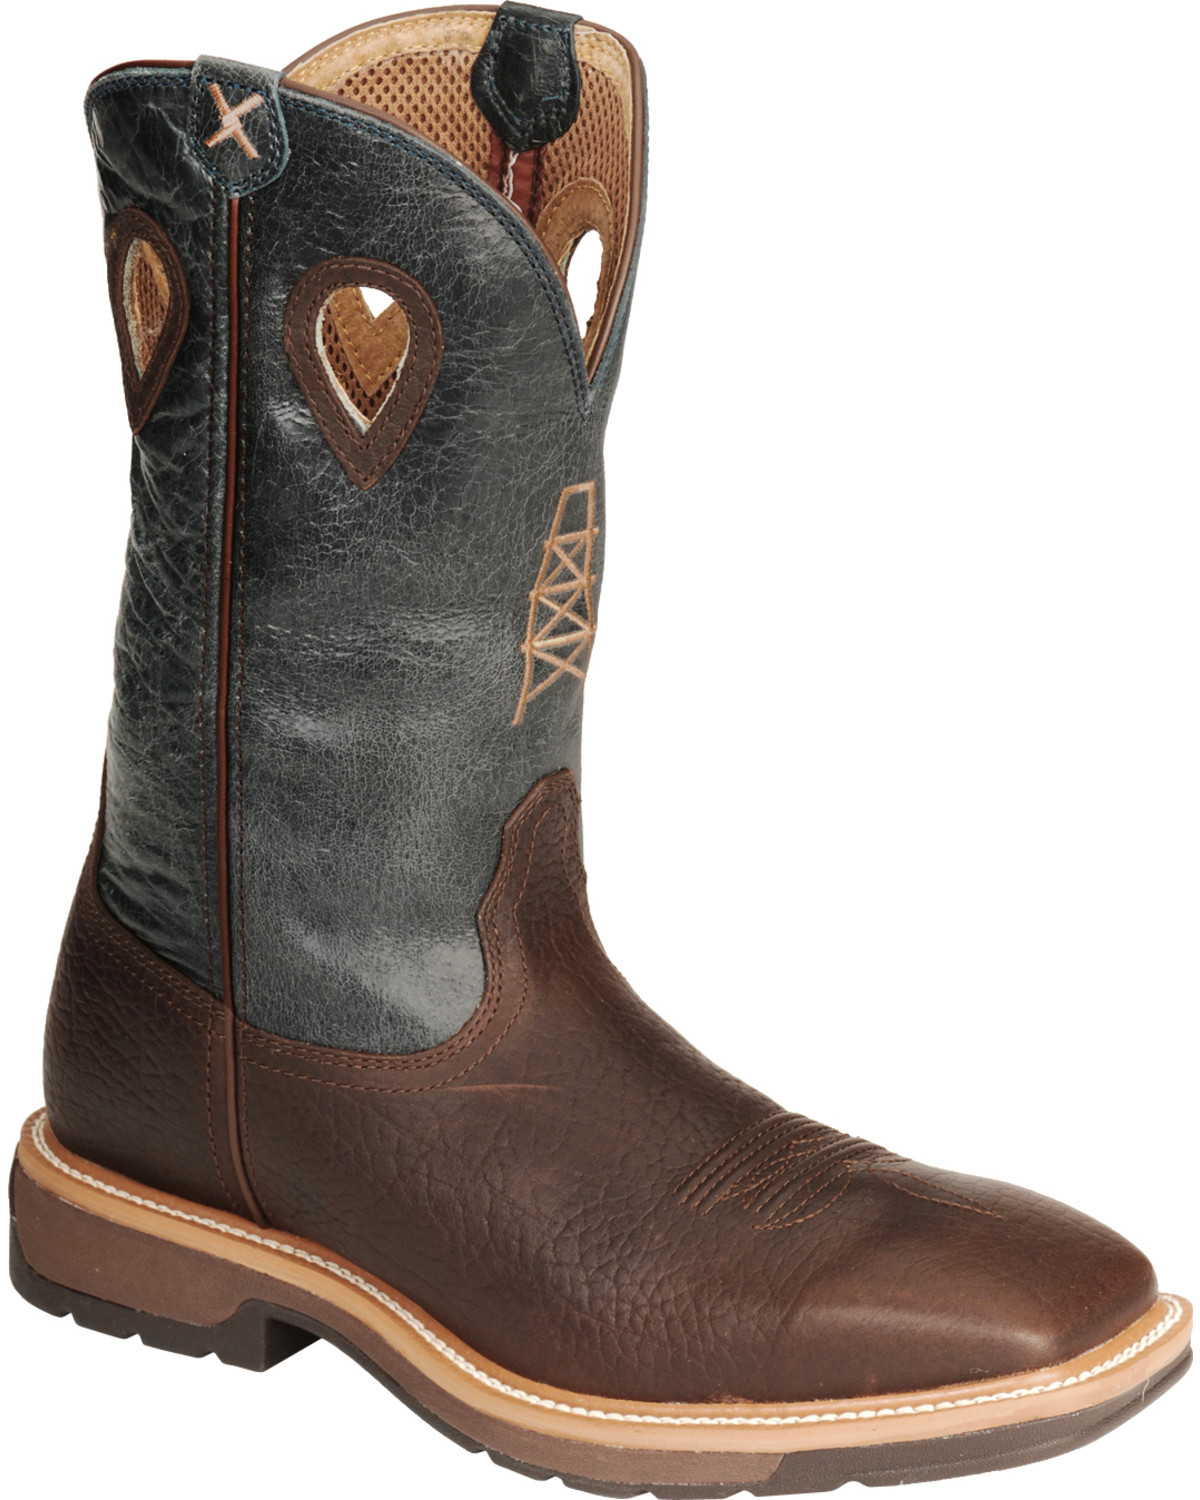 Twisted X Men S Square Steel Toe Lite Weight Work Boots Boot Barn